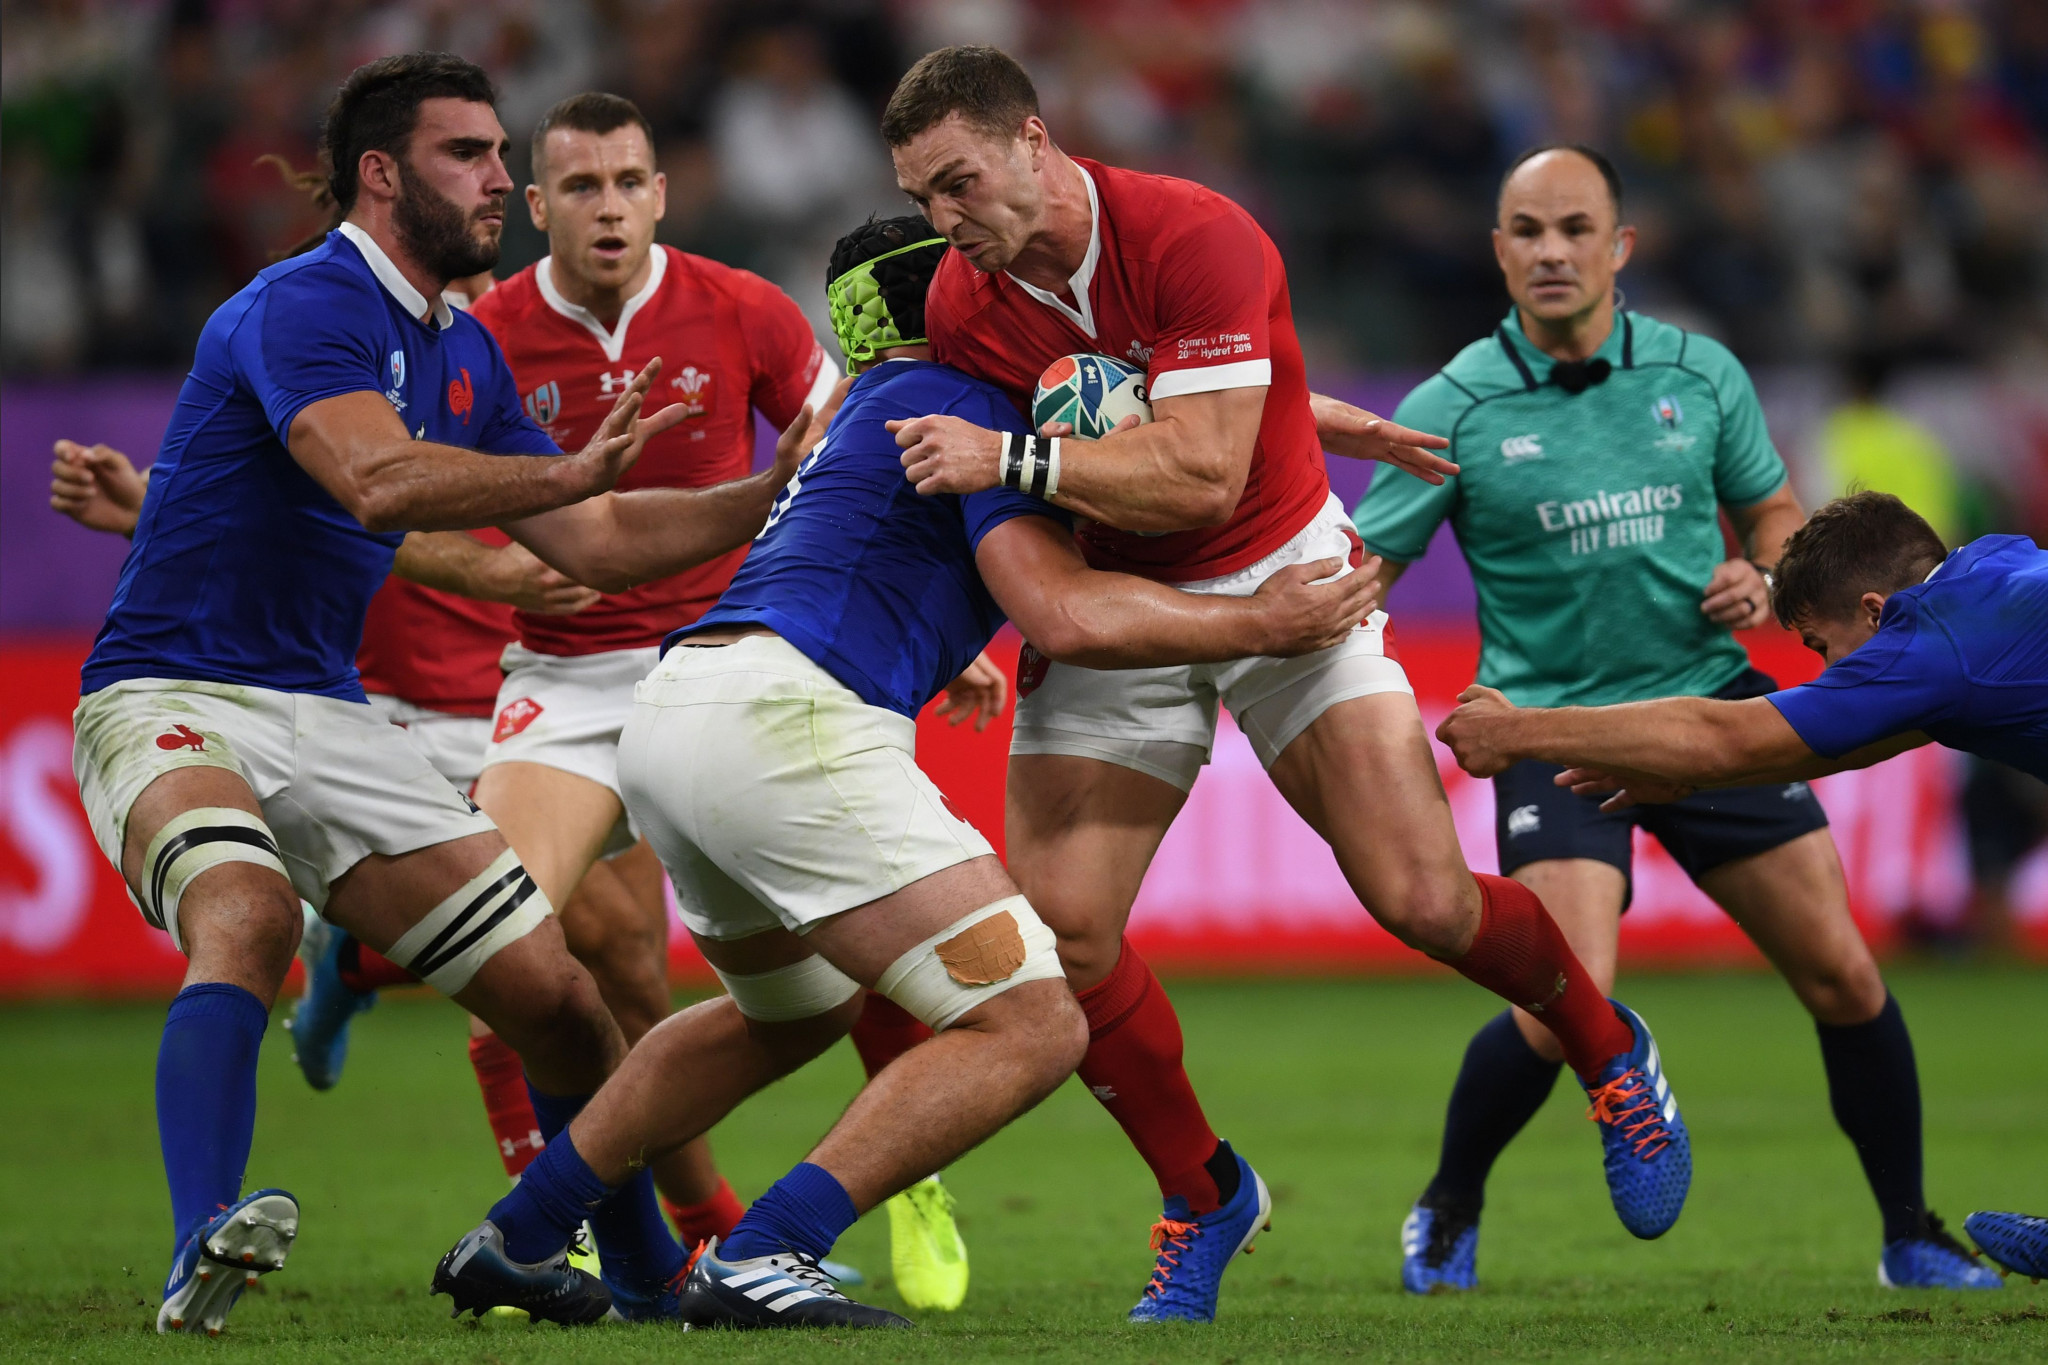 Wales narrowly beat France to set up a semi-final clash with South Africa at the Rugby World Cup ©Getty Images